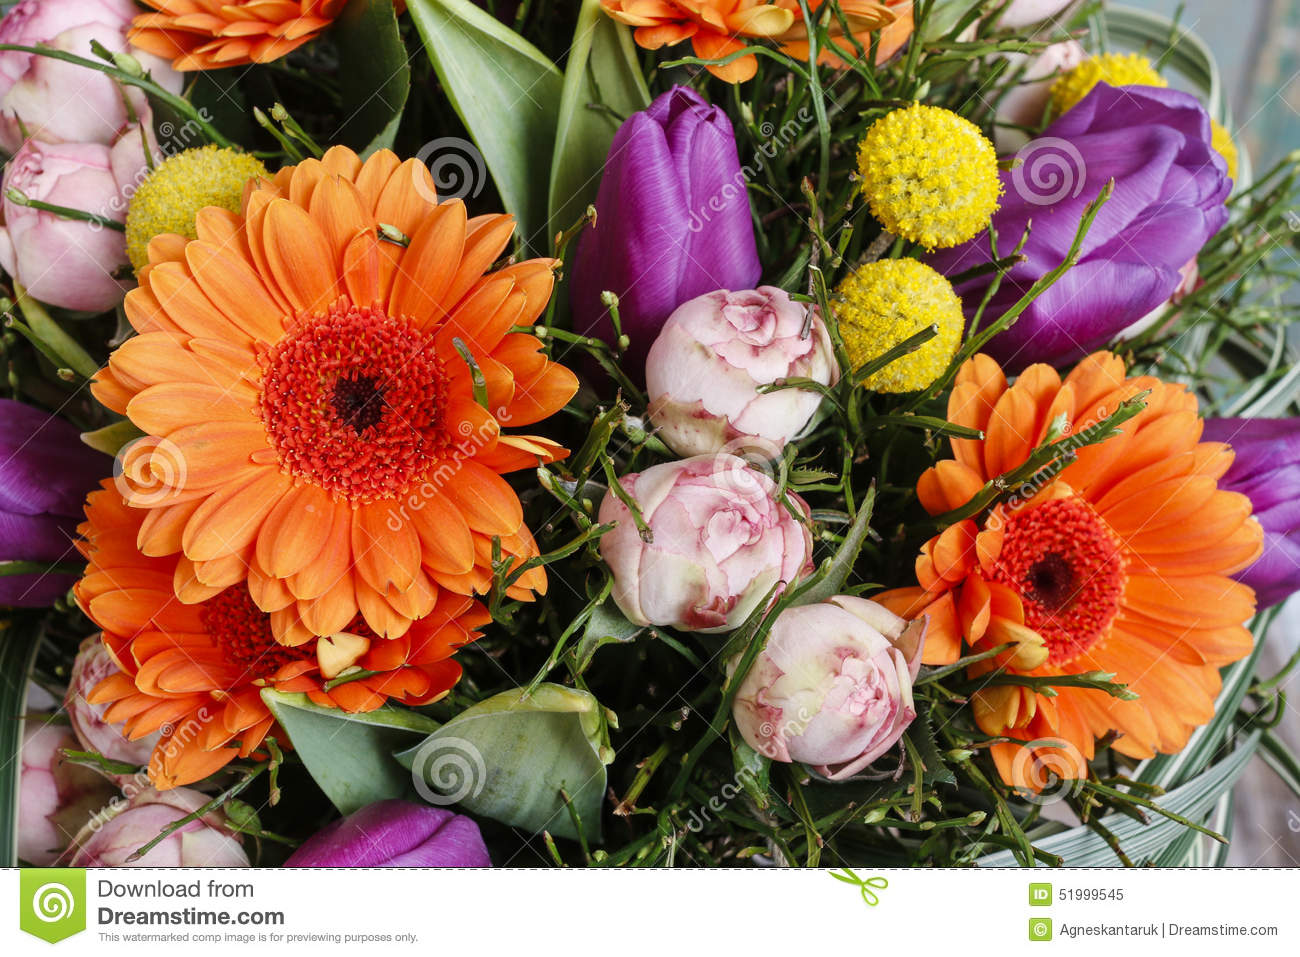 bouquet des marguerites oranges de gerbera des tulipes violettes et des roses roses image stock. Black Bedroom Furniture Sets. Home Design Ideas